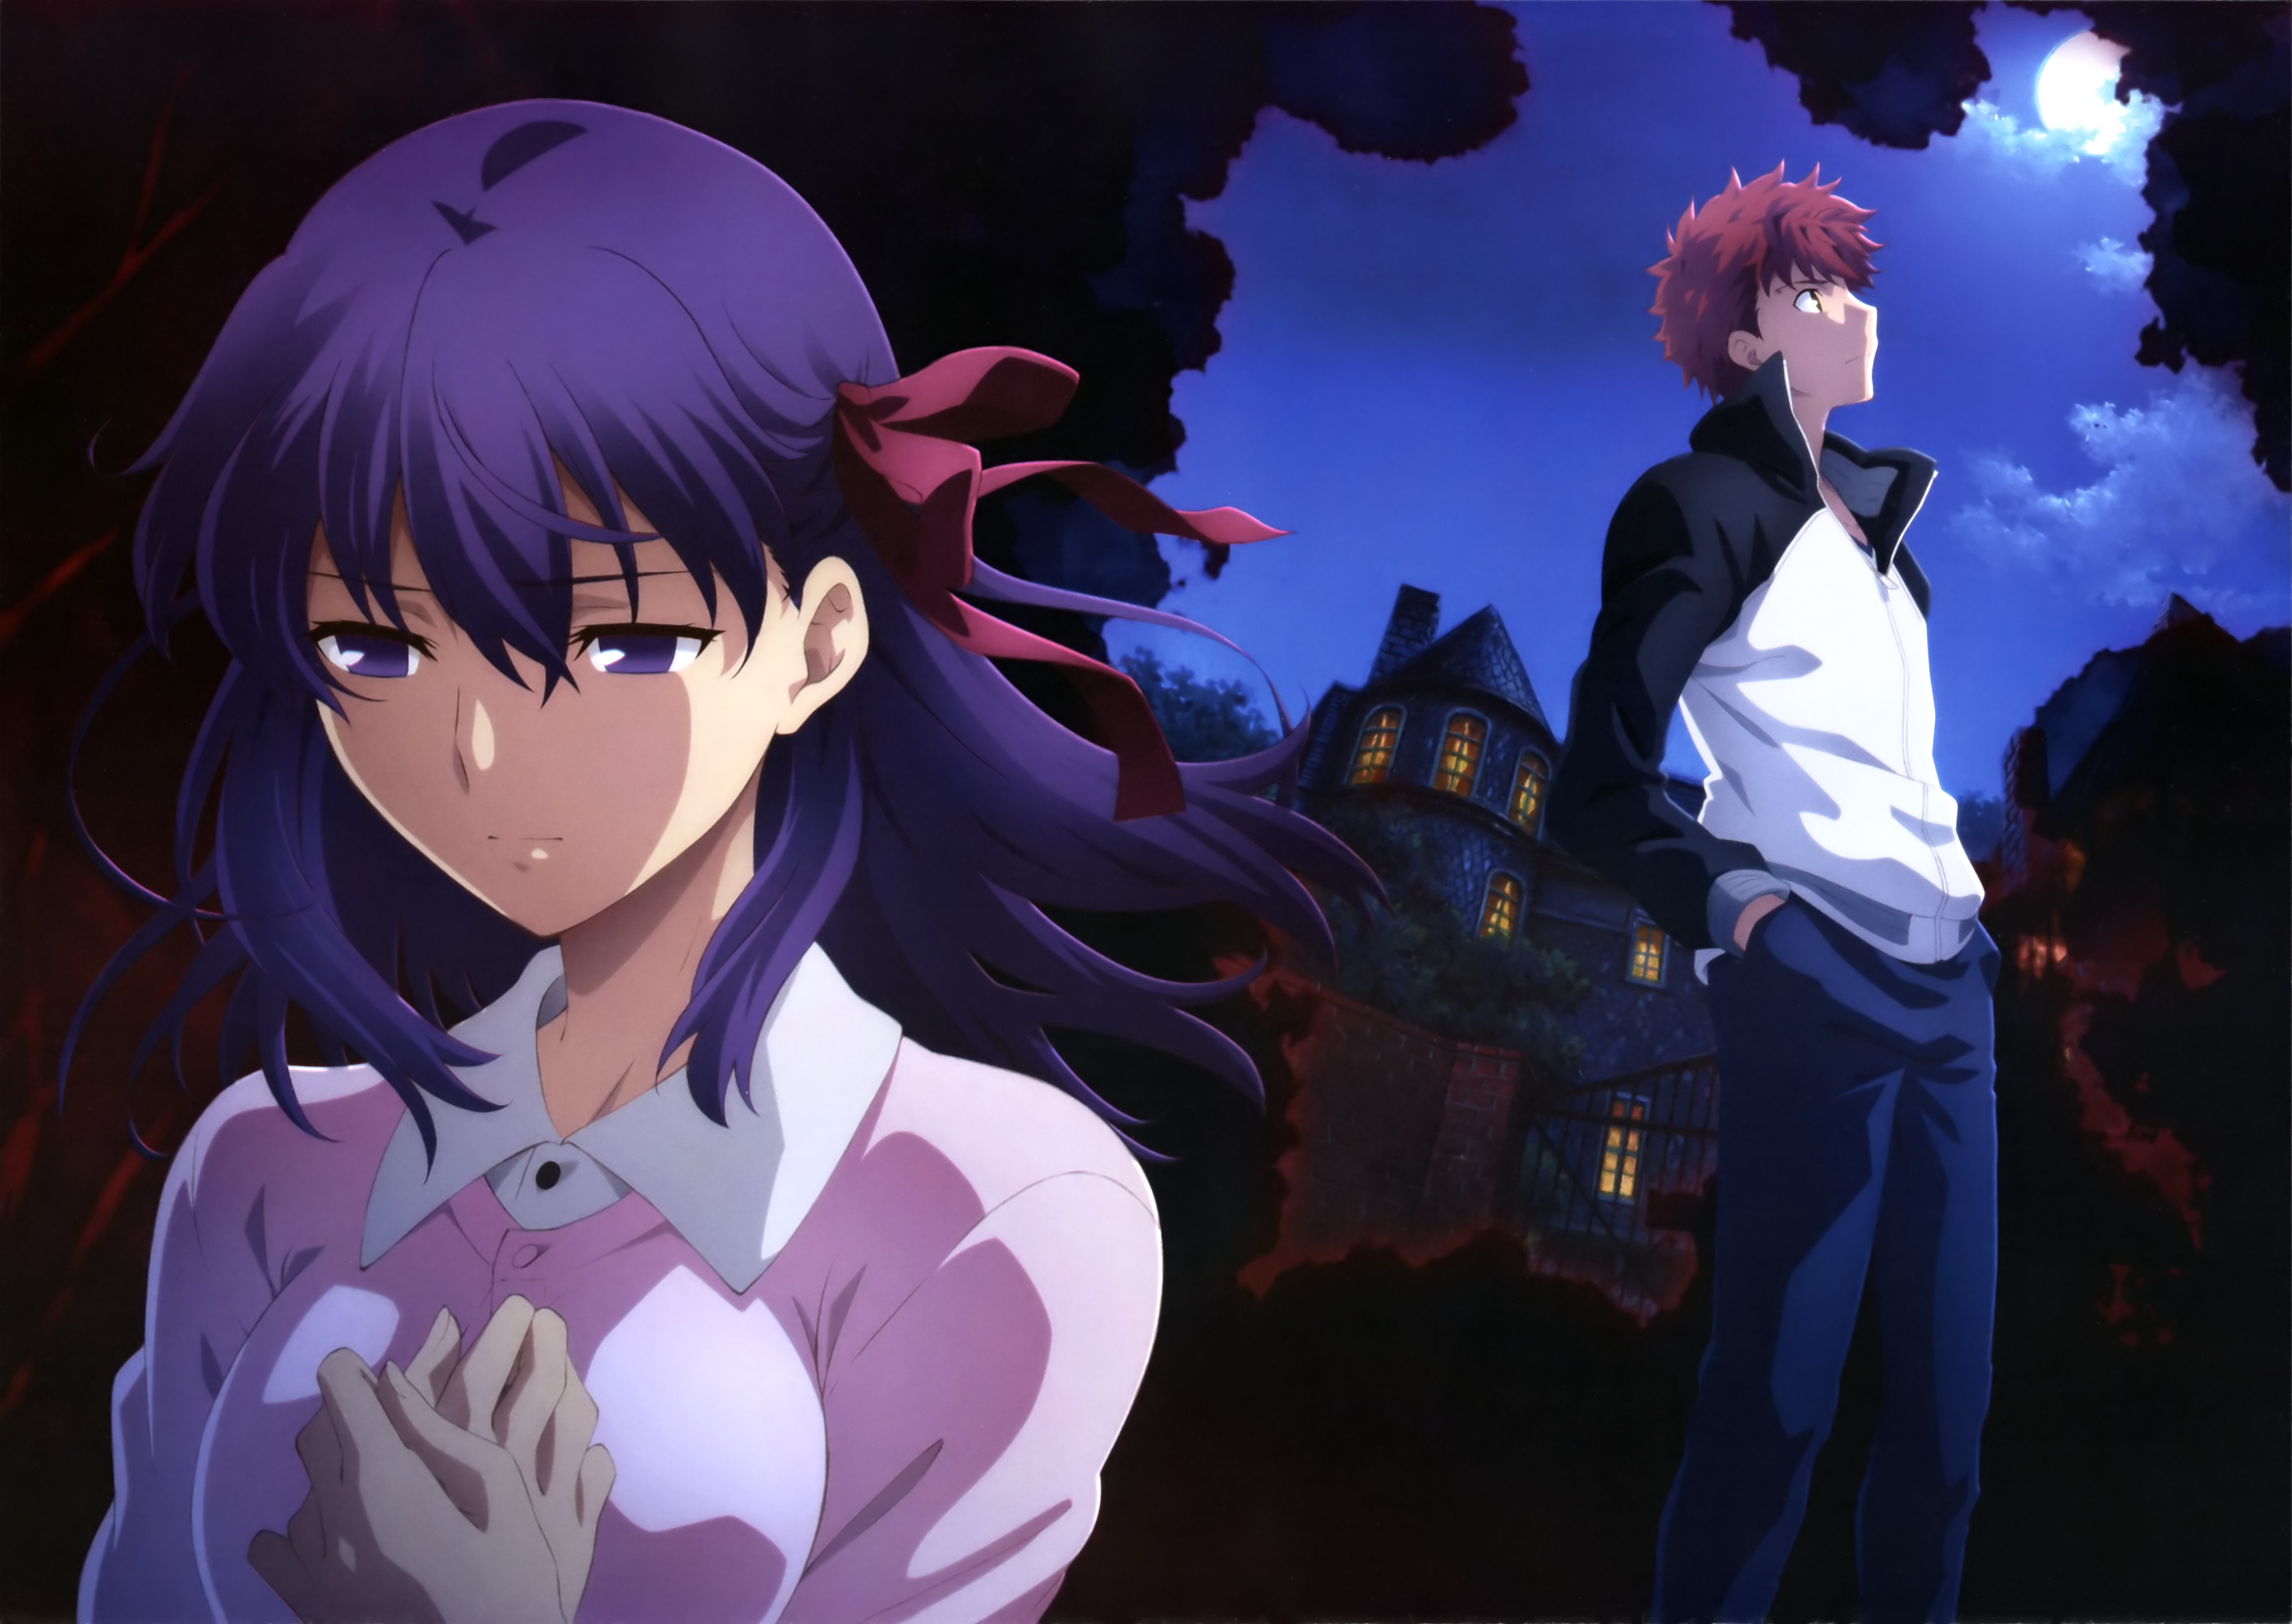 فيلم Fate/stay night Movie: Heaven's Feel - I. Presage Flower